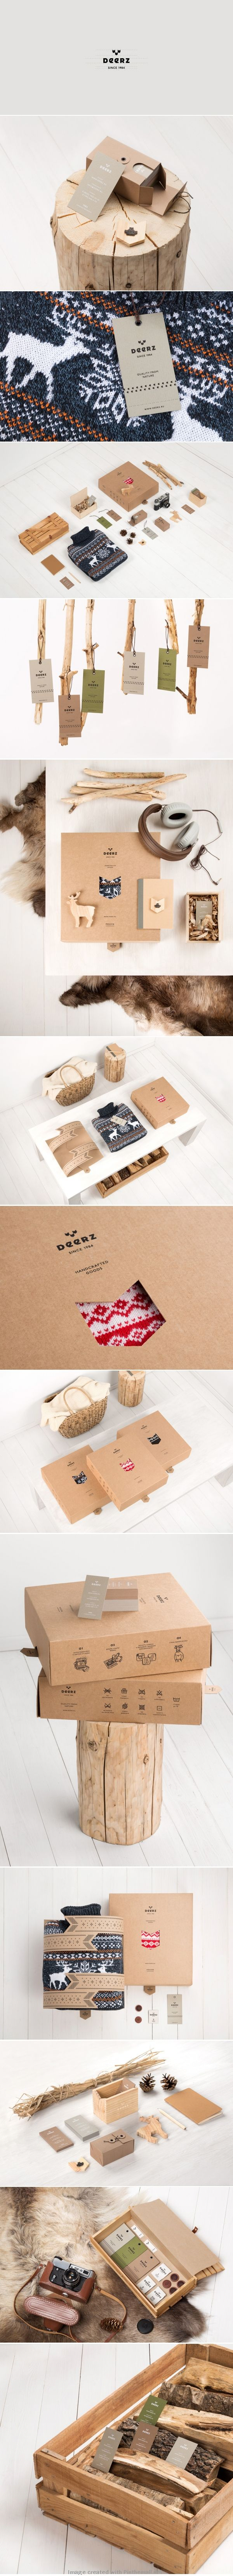 Deerz logo corporate branding visual graphic identity kraft paper design business card label packaging box white print clothing nature wood